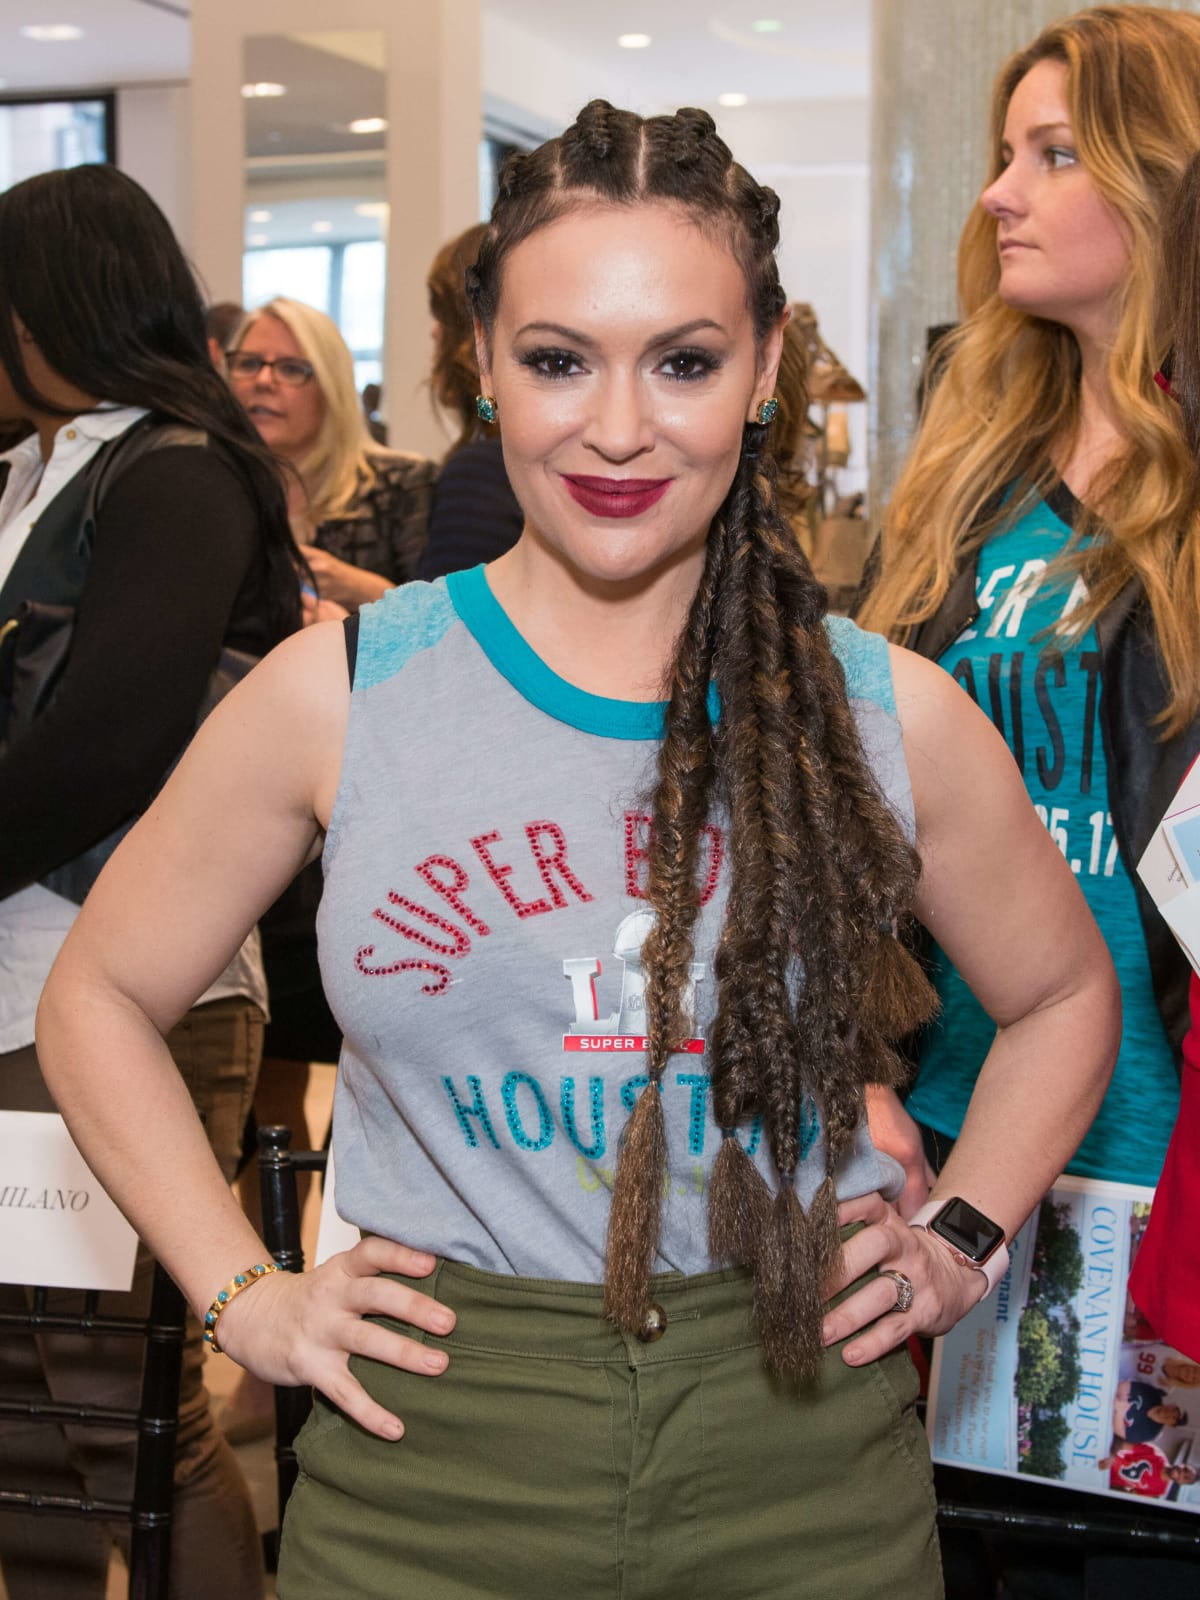 Alyssa Milano/NFL Wives Fashion Show